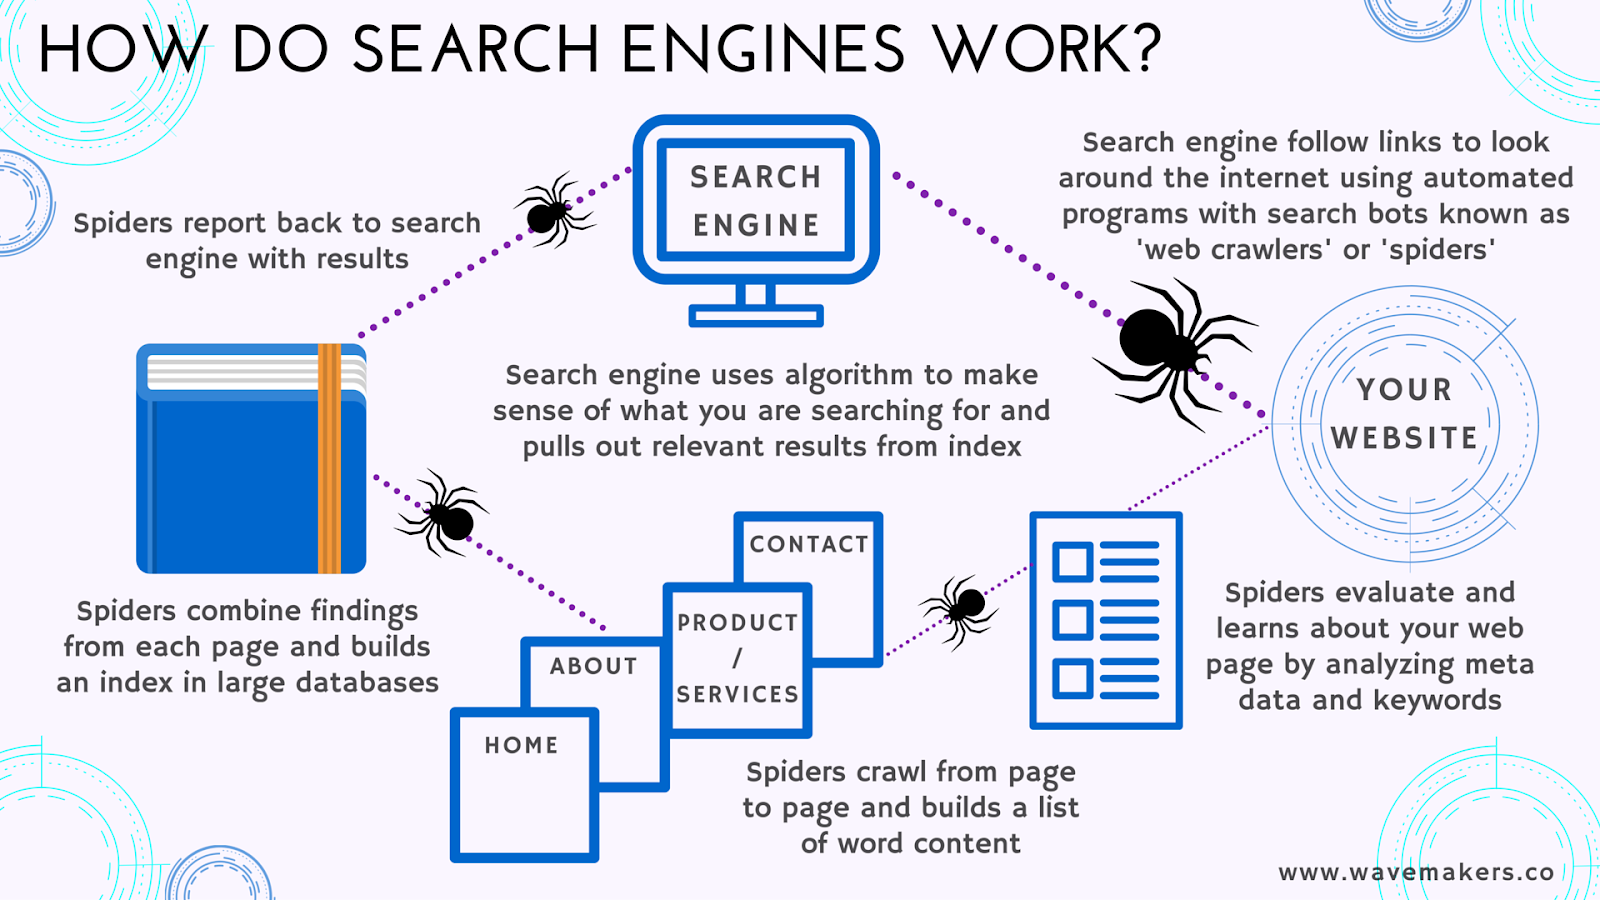 hight resolution of how search engines work infographic for seo by